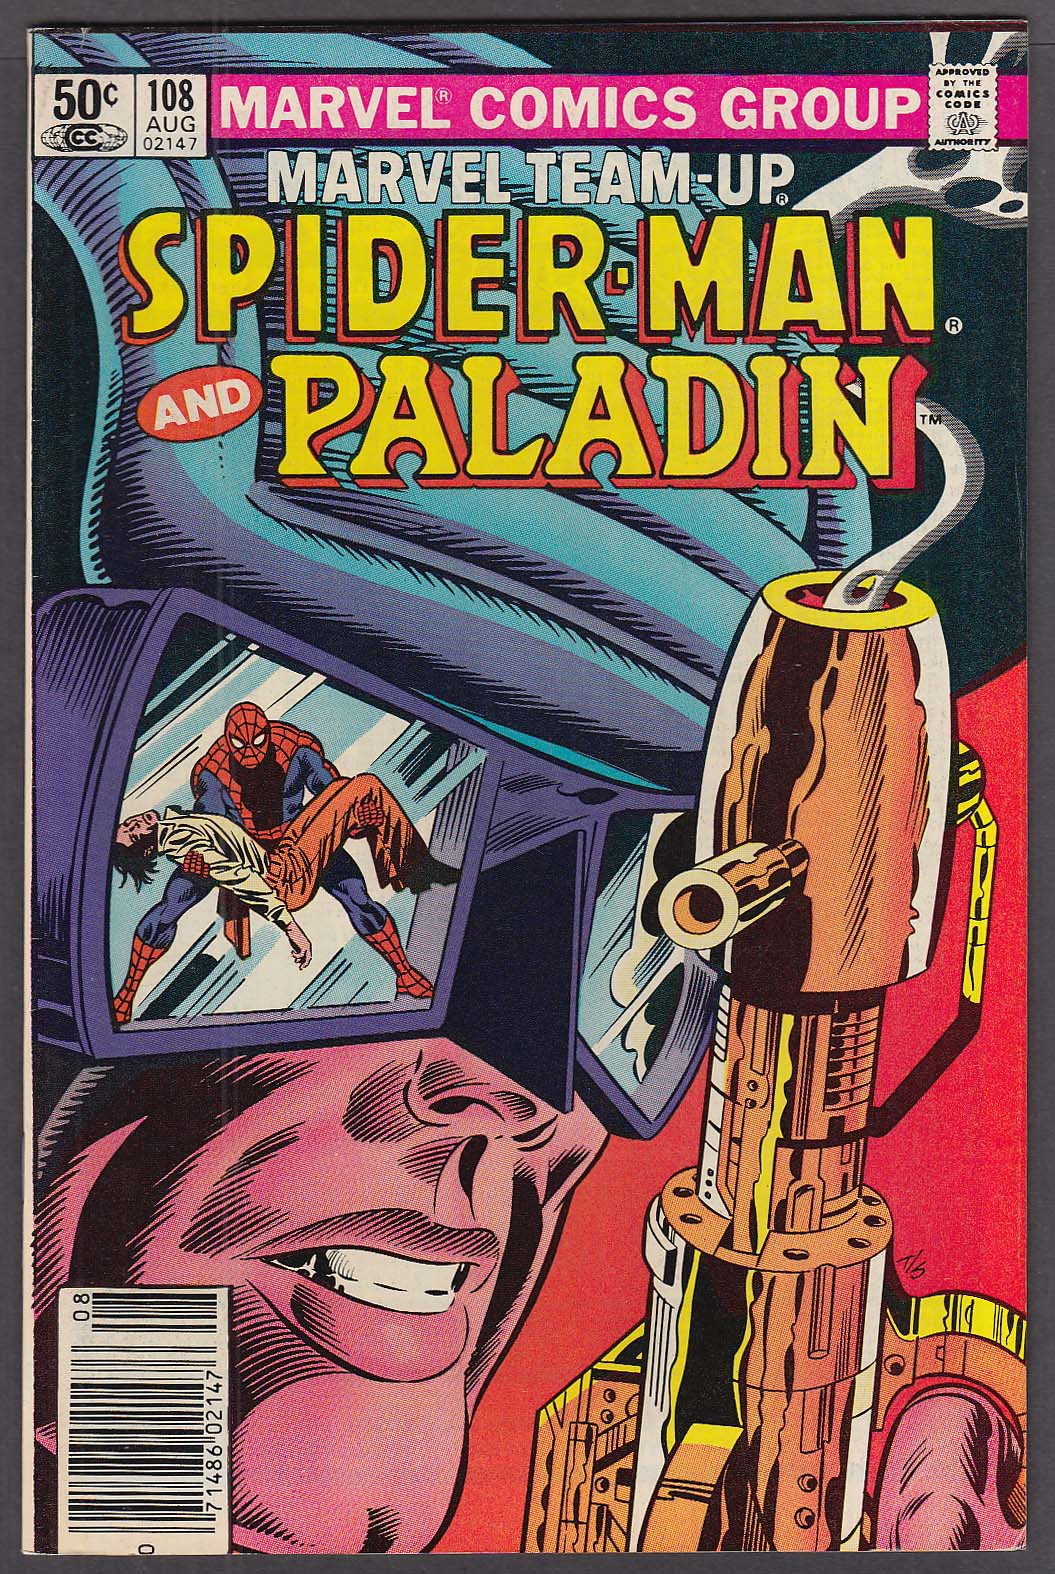 Image for MARVEL TEAM-UP #108 Spider-Man & Paladin comic 8 1981